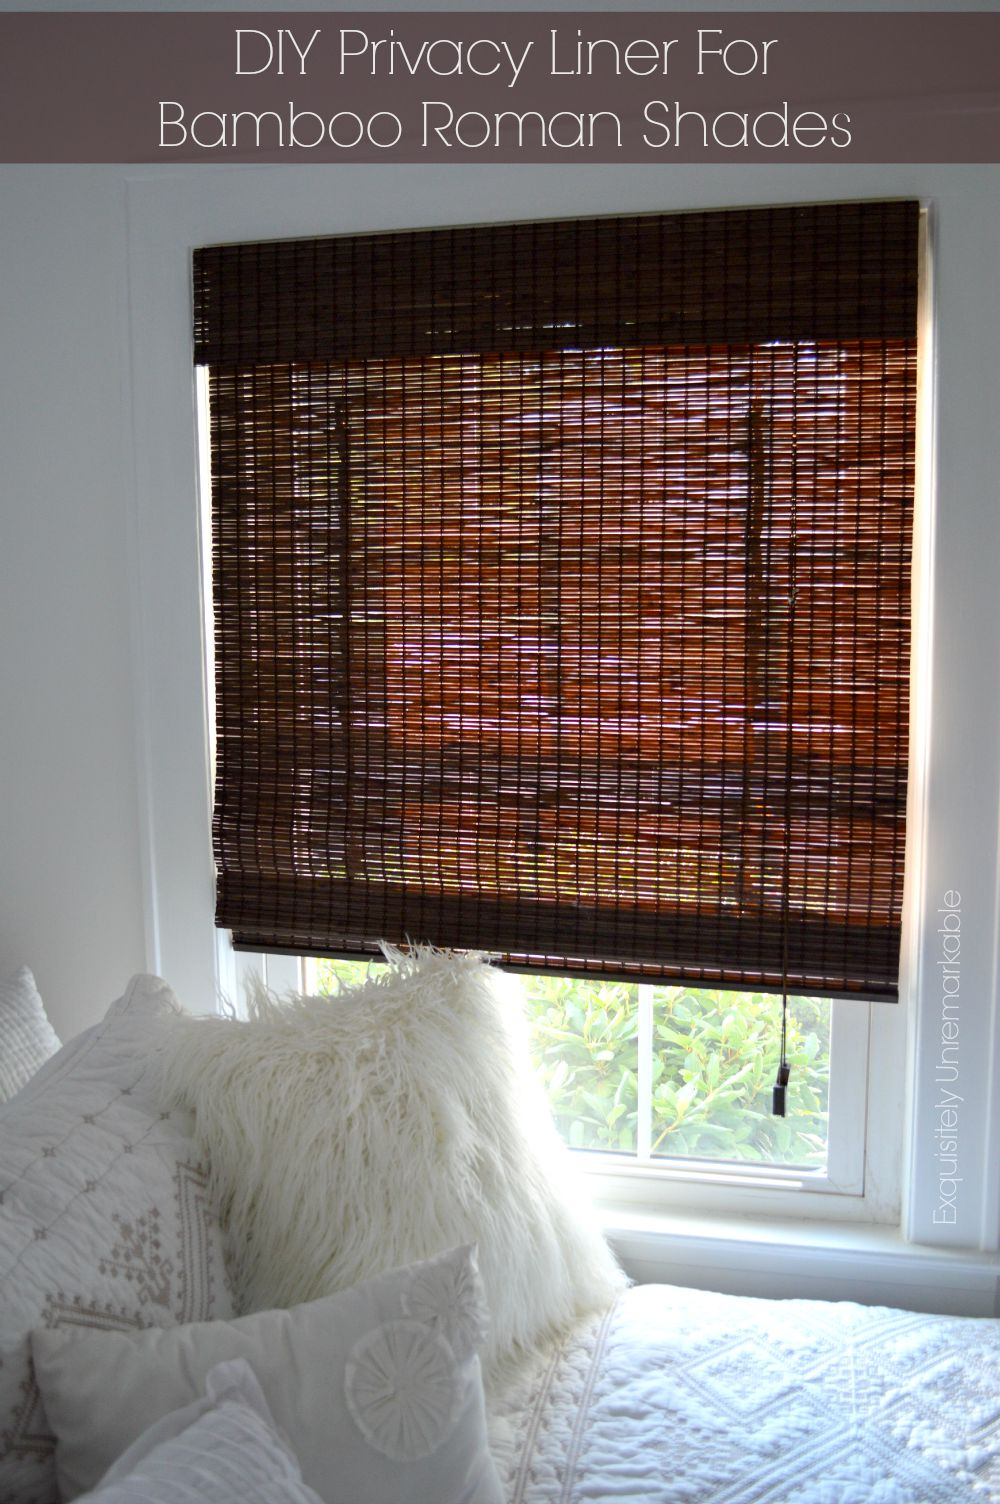 DIY privacy liner for bamboo roman shades